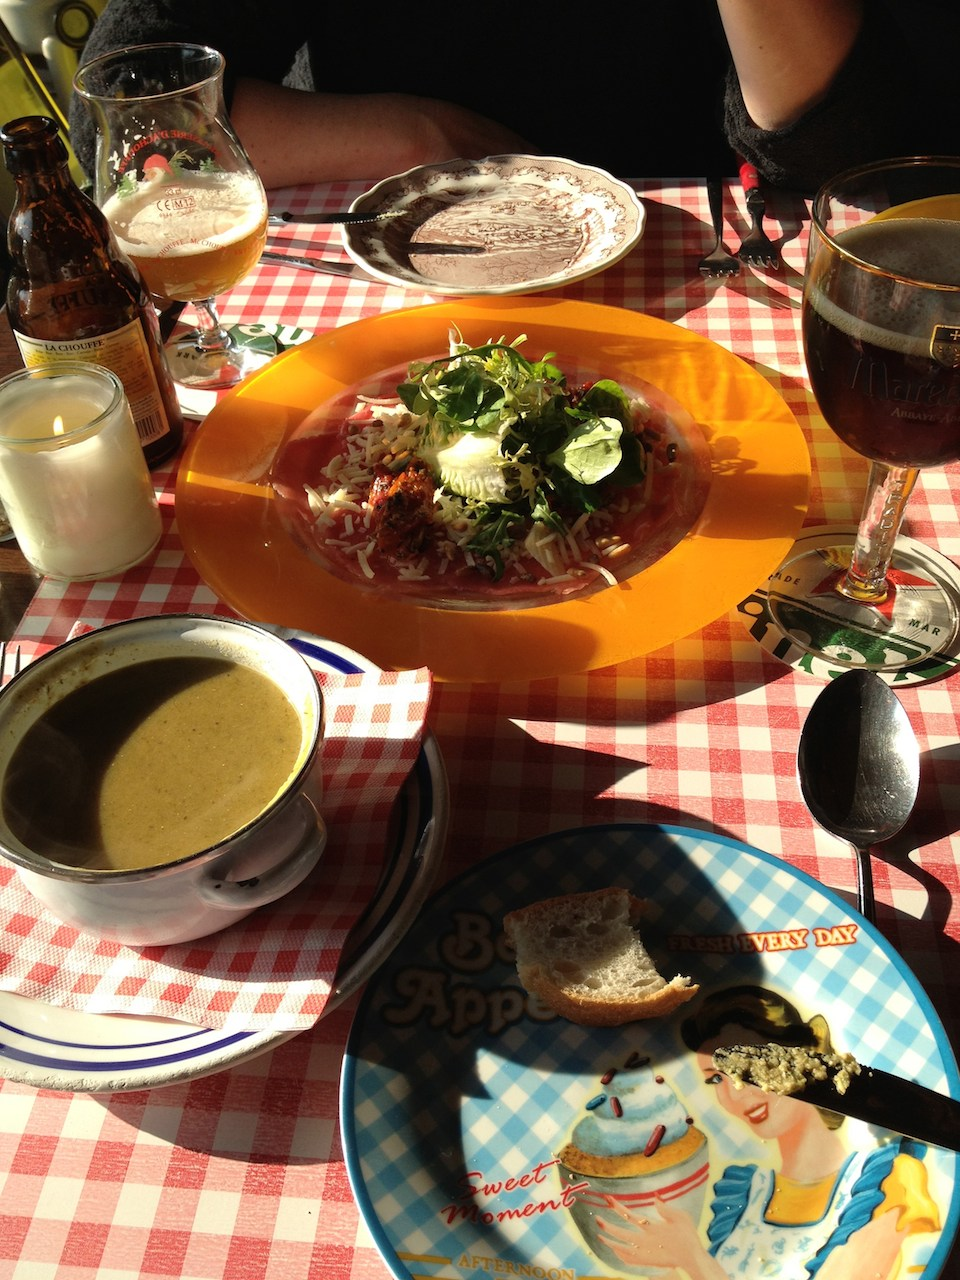 Mismatched plates, glasses and cutlery